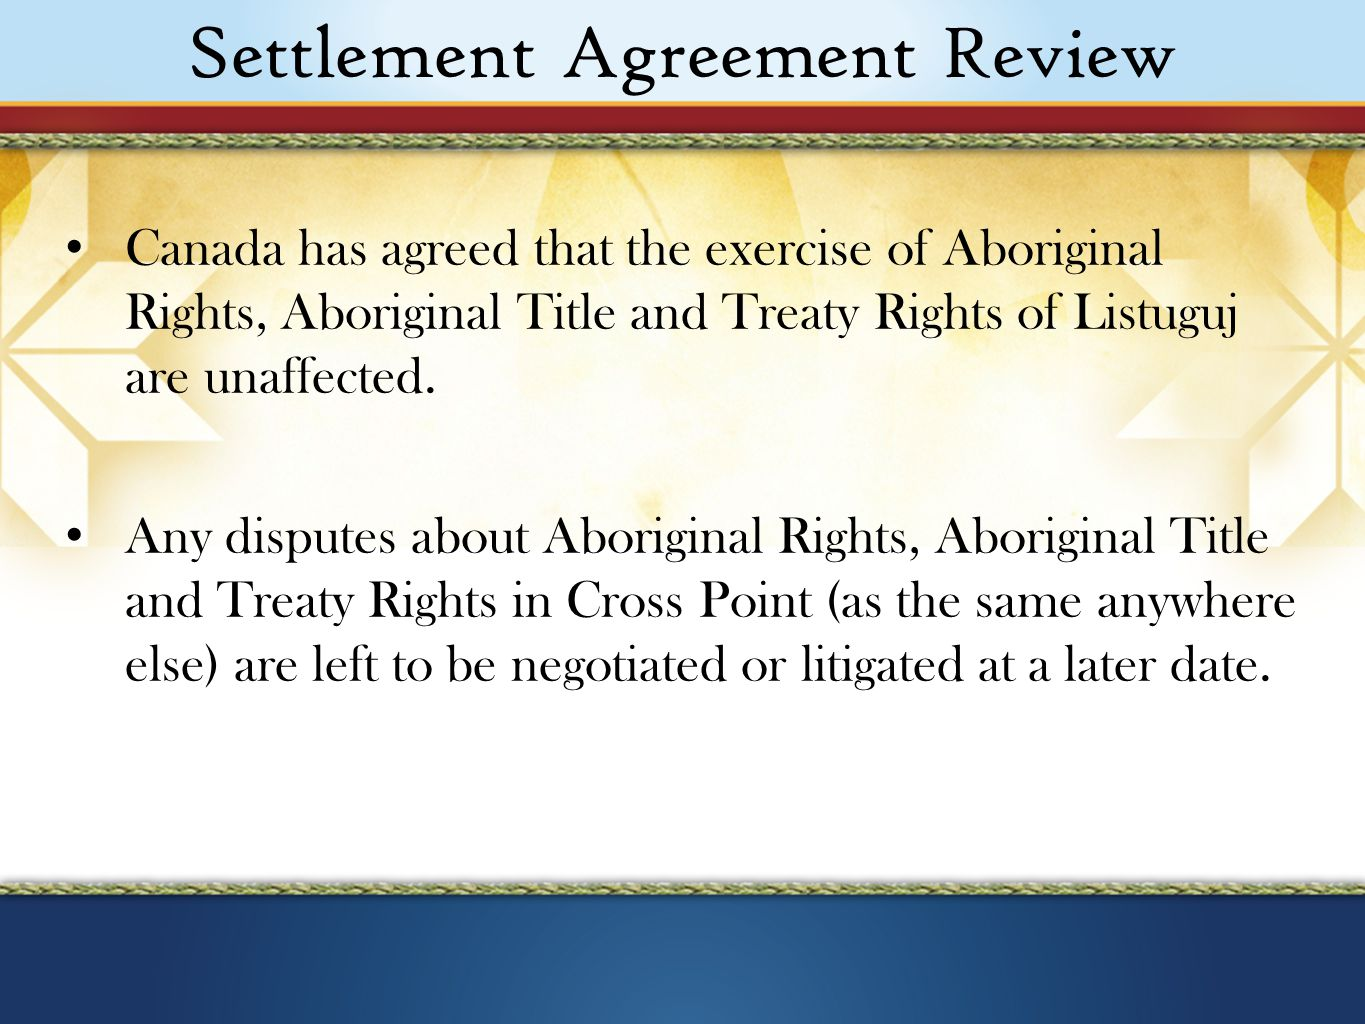 Community Concerns & Misconceptions Common Misconceptions We are selling the land – FALSE By accepting this agreement, we will forfeit our Aboriginal rights – FALSE We can get more money if we re-open negotiations with Canada before a vote- FALSE